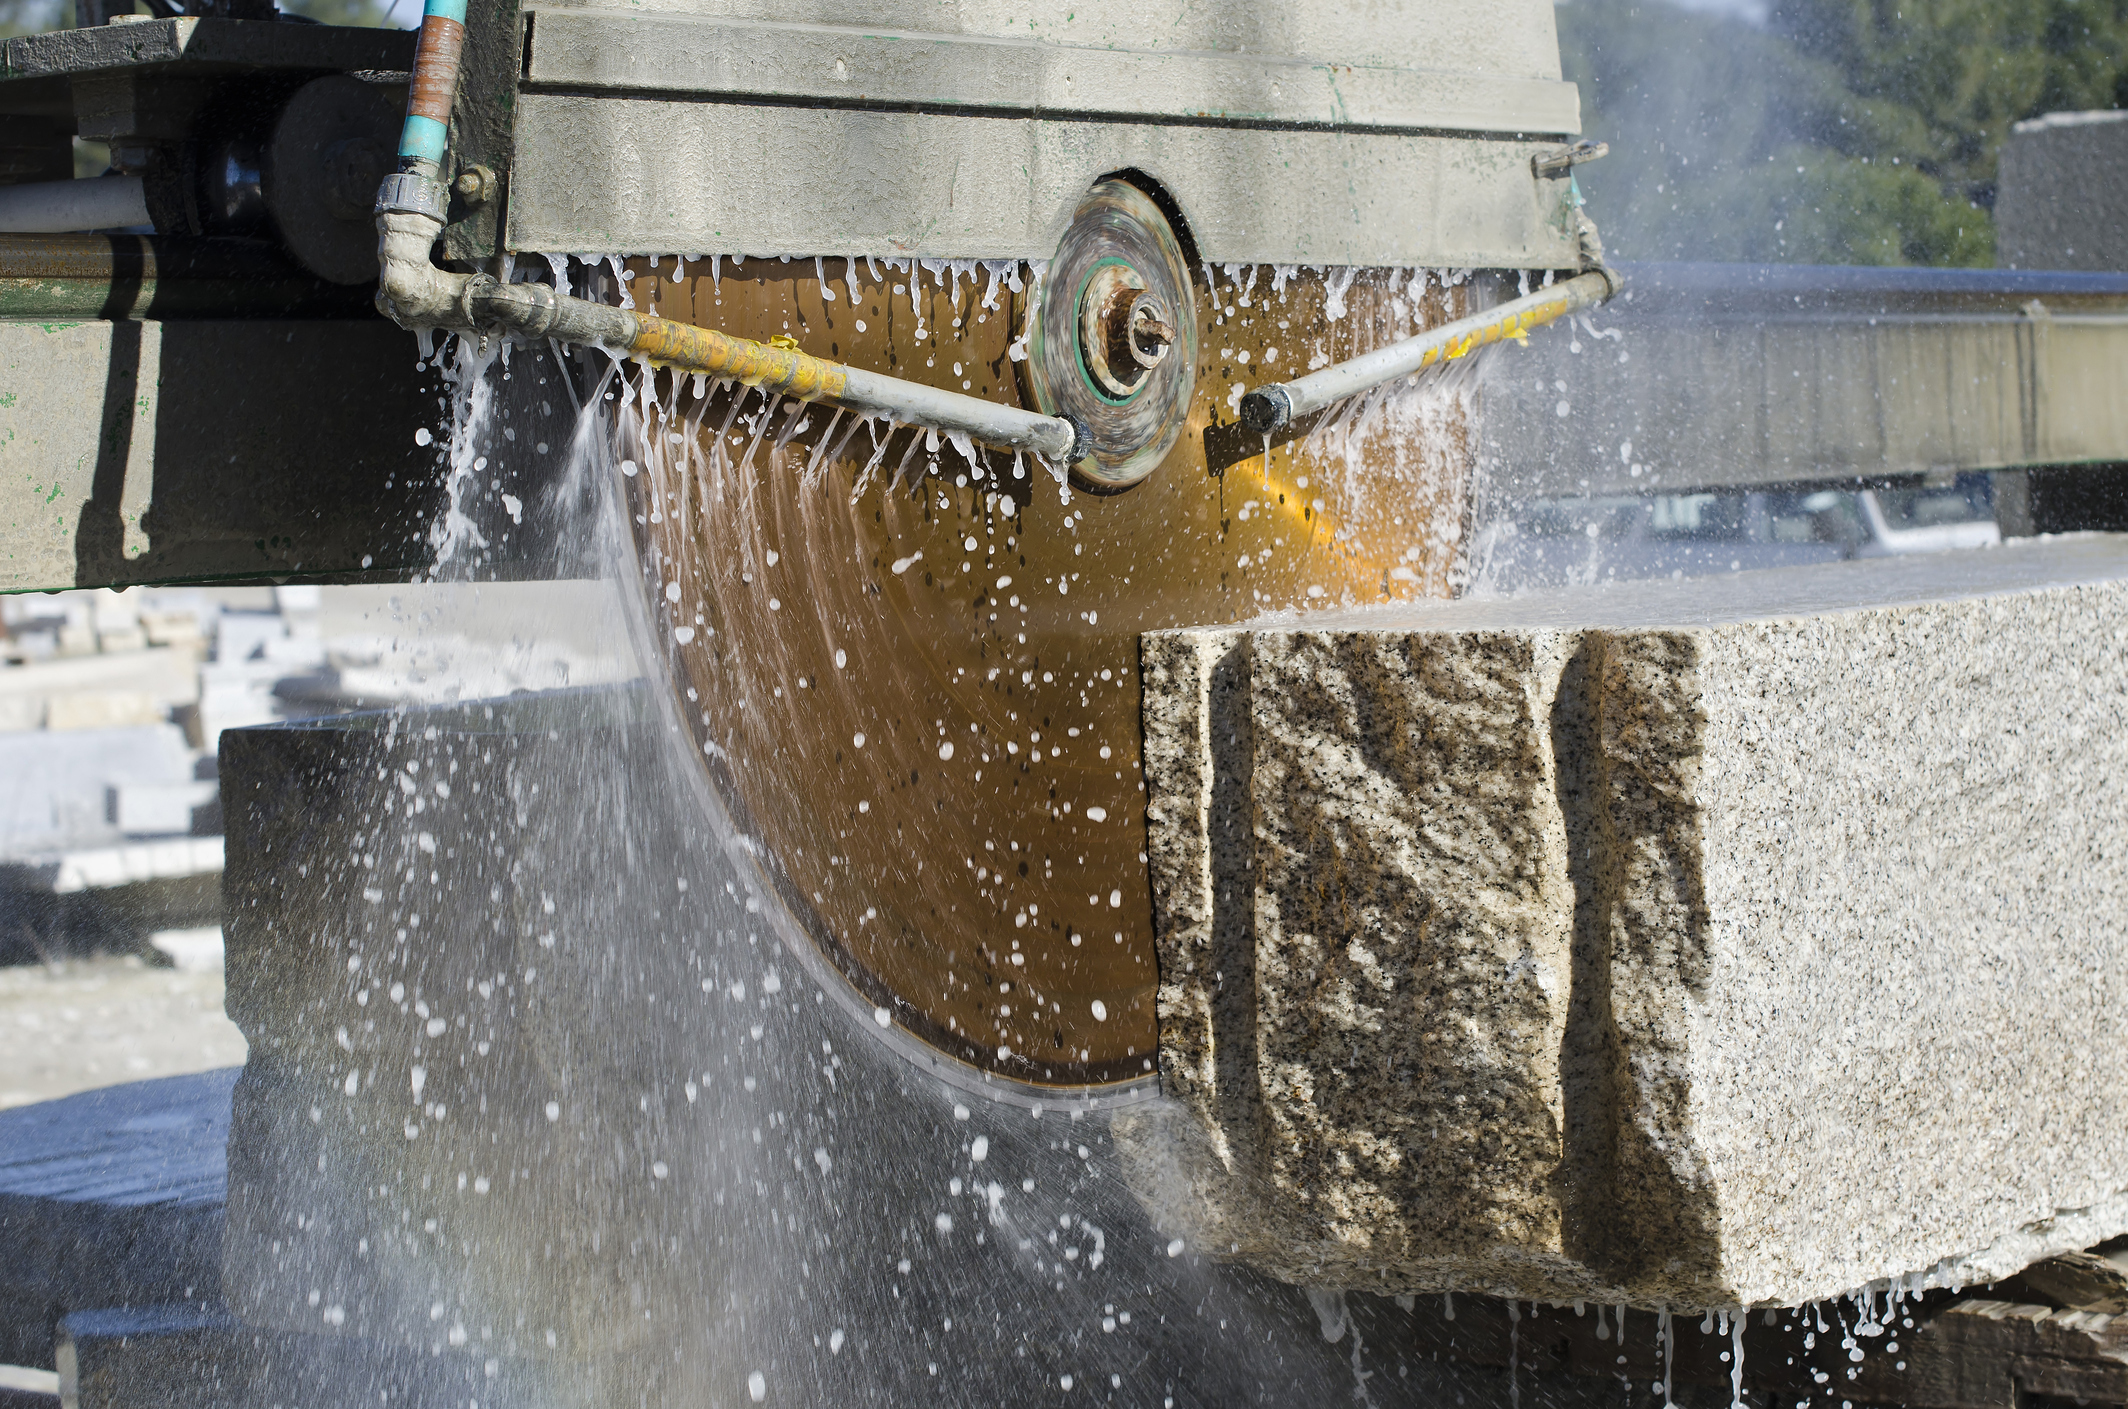 A wet cutting blade sawing through concrete slab.